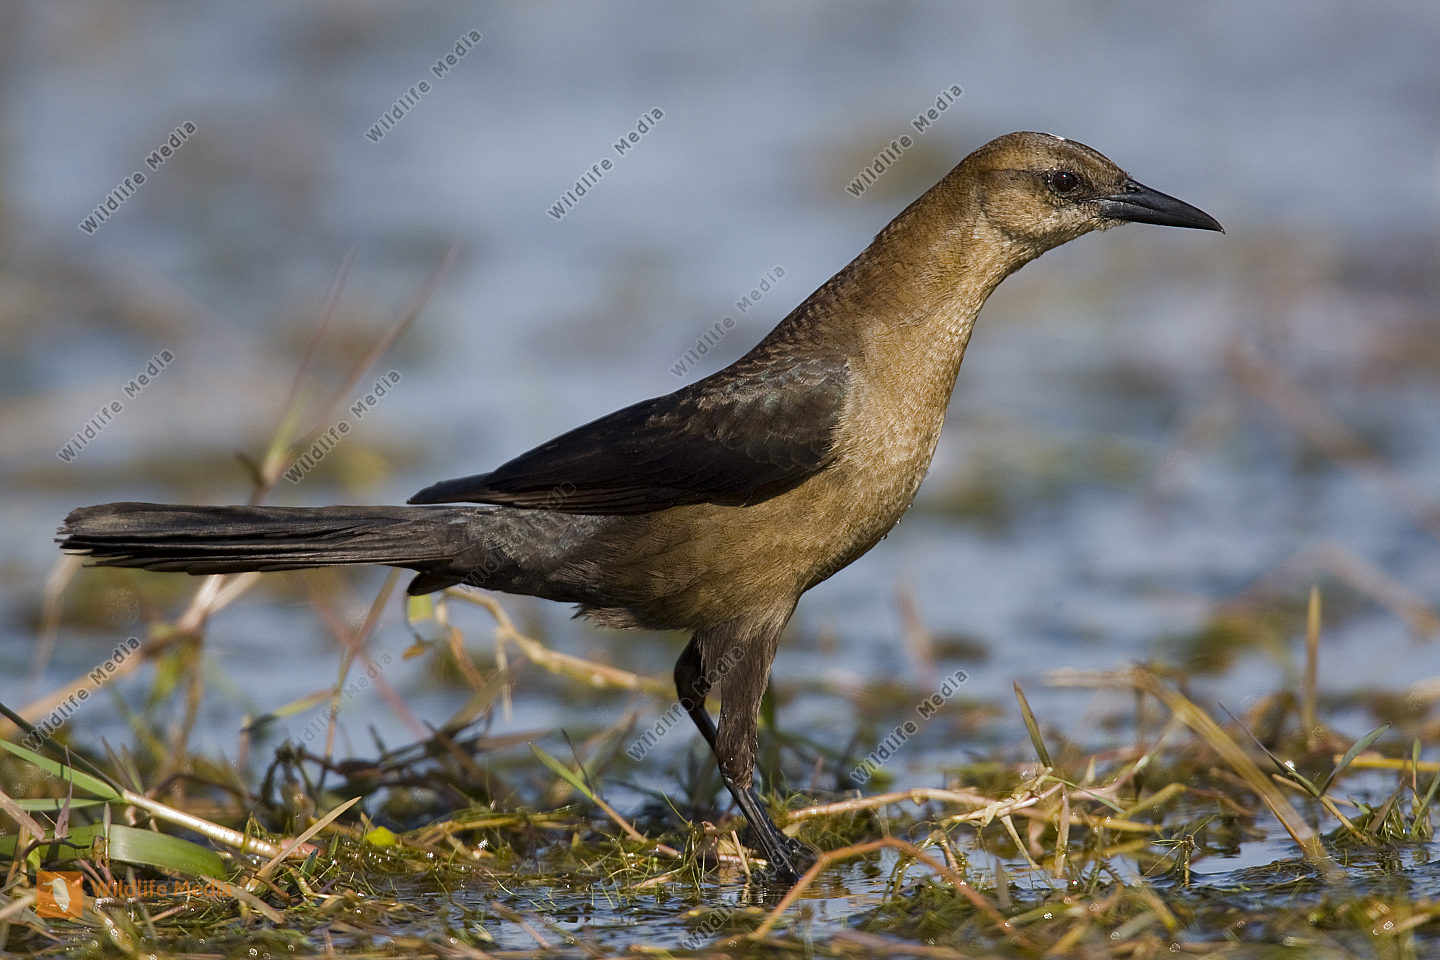 Bootschwanzgrackel / Boat-tailed Grackle / Quiscalus major